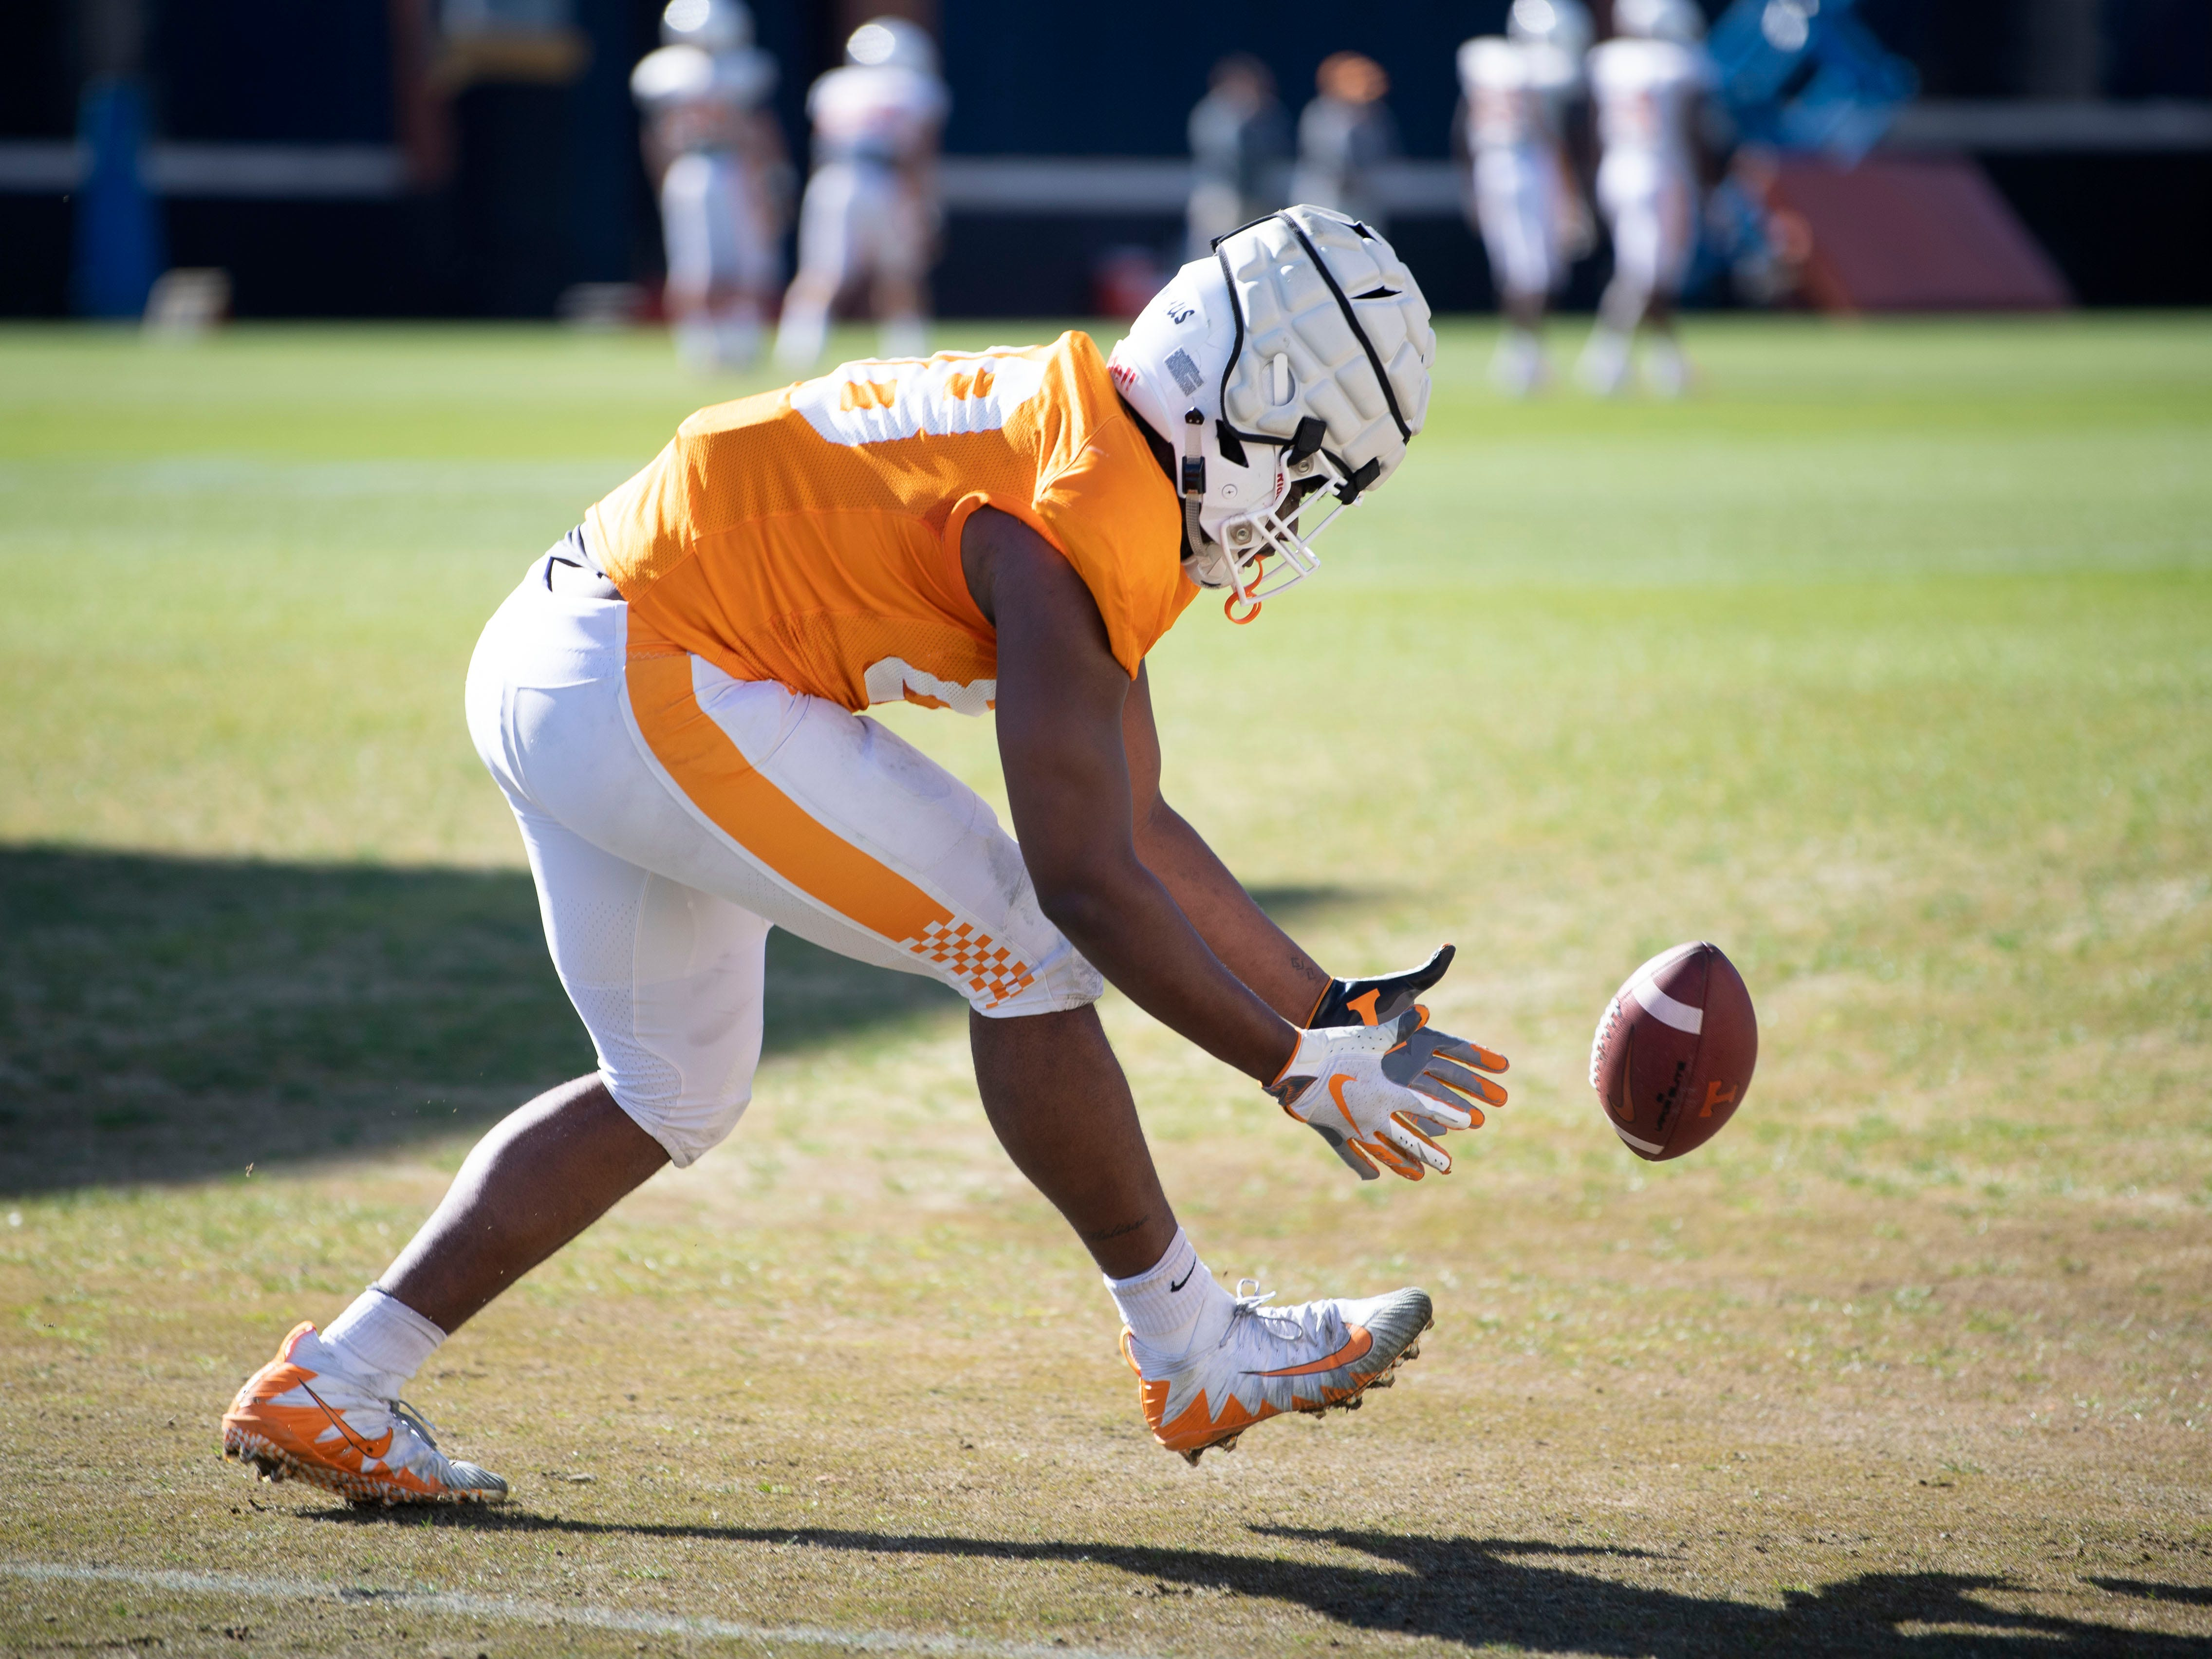 Tennessee defensive lineman LaTrell Bumphus (88) at practice on Friday, March 15, 2019.